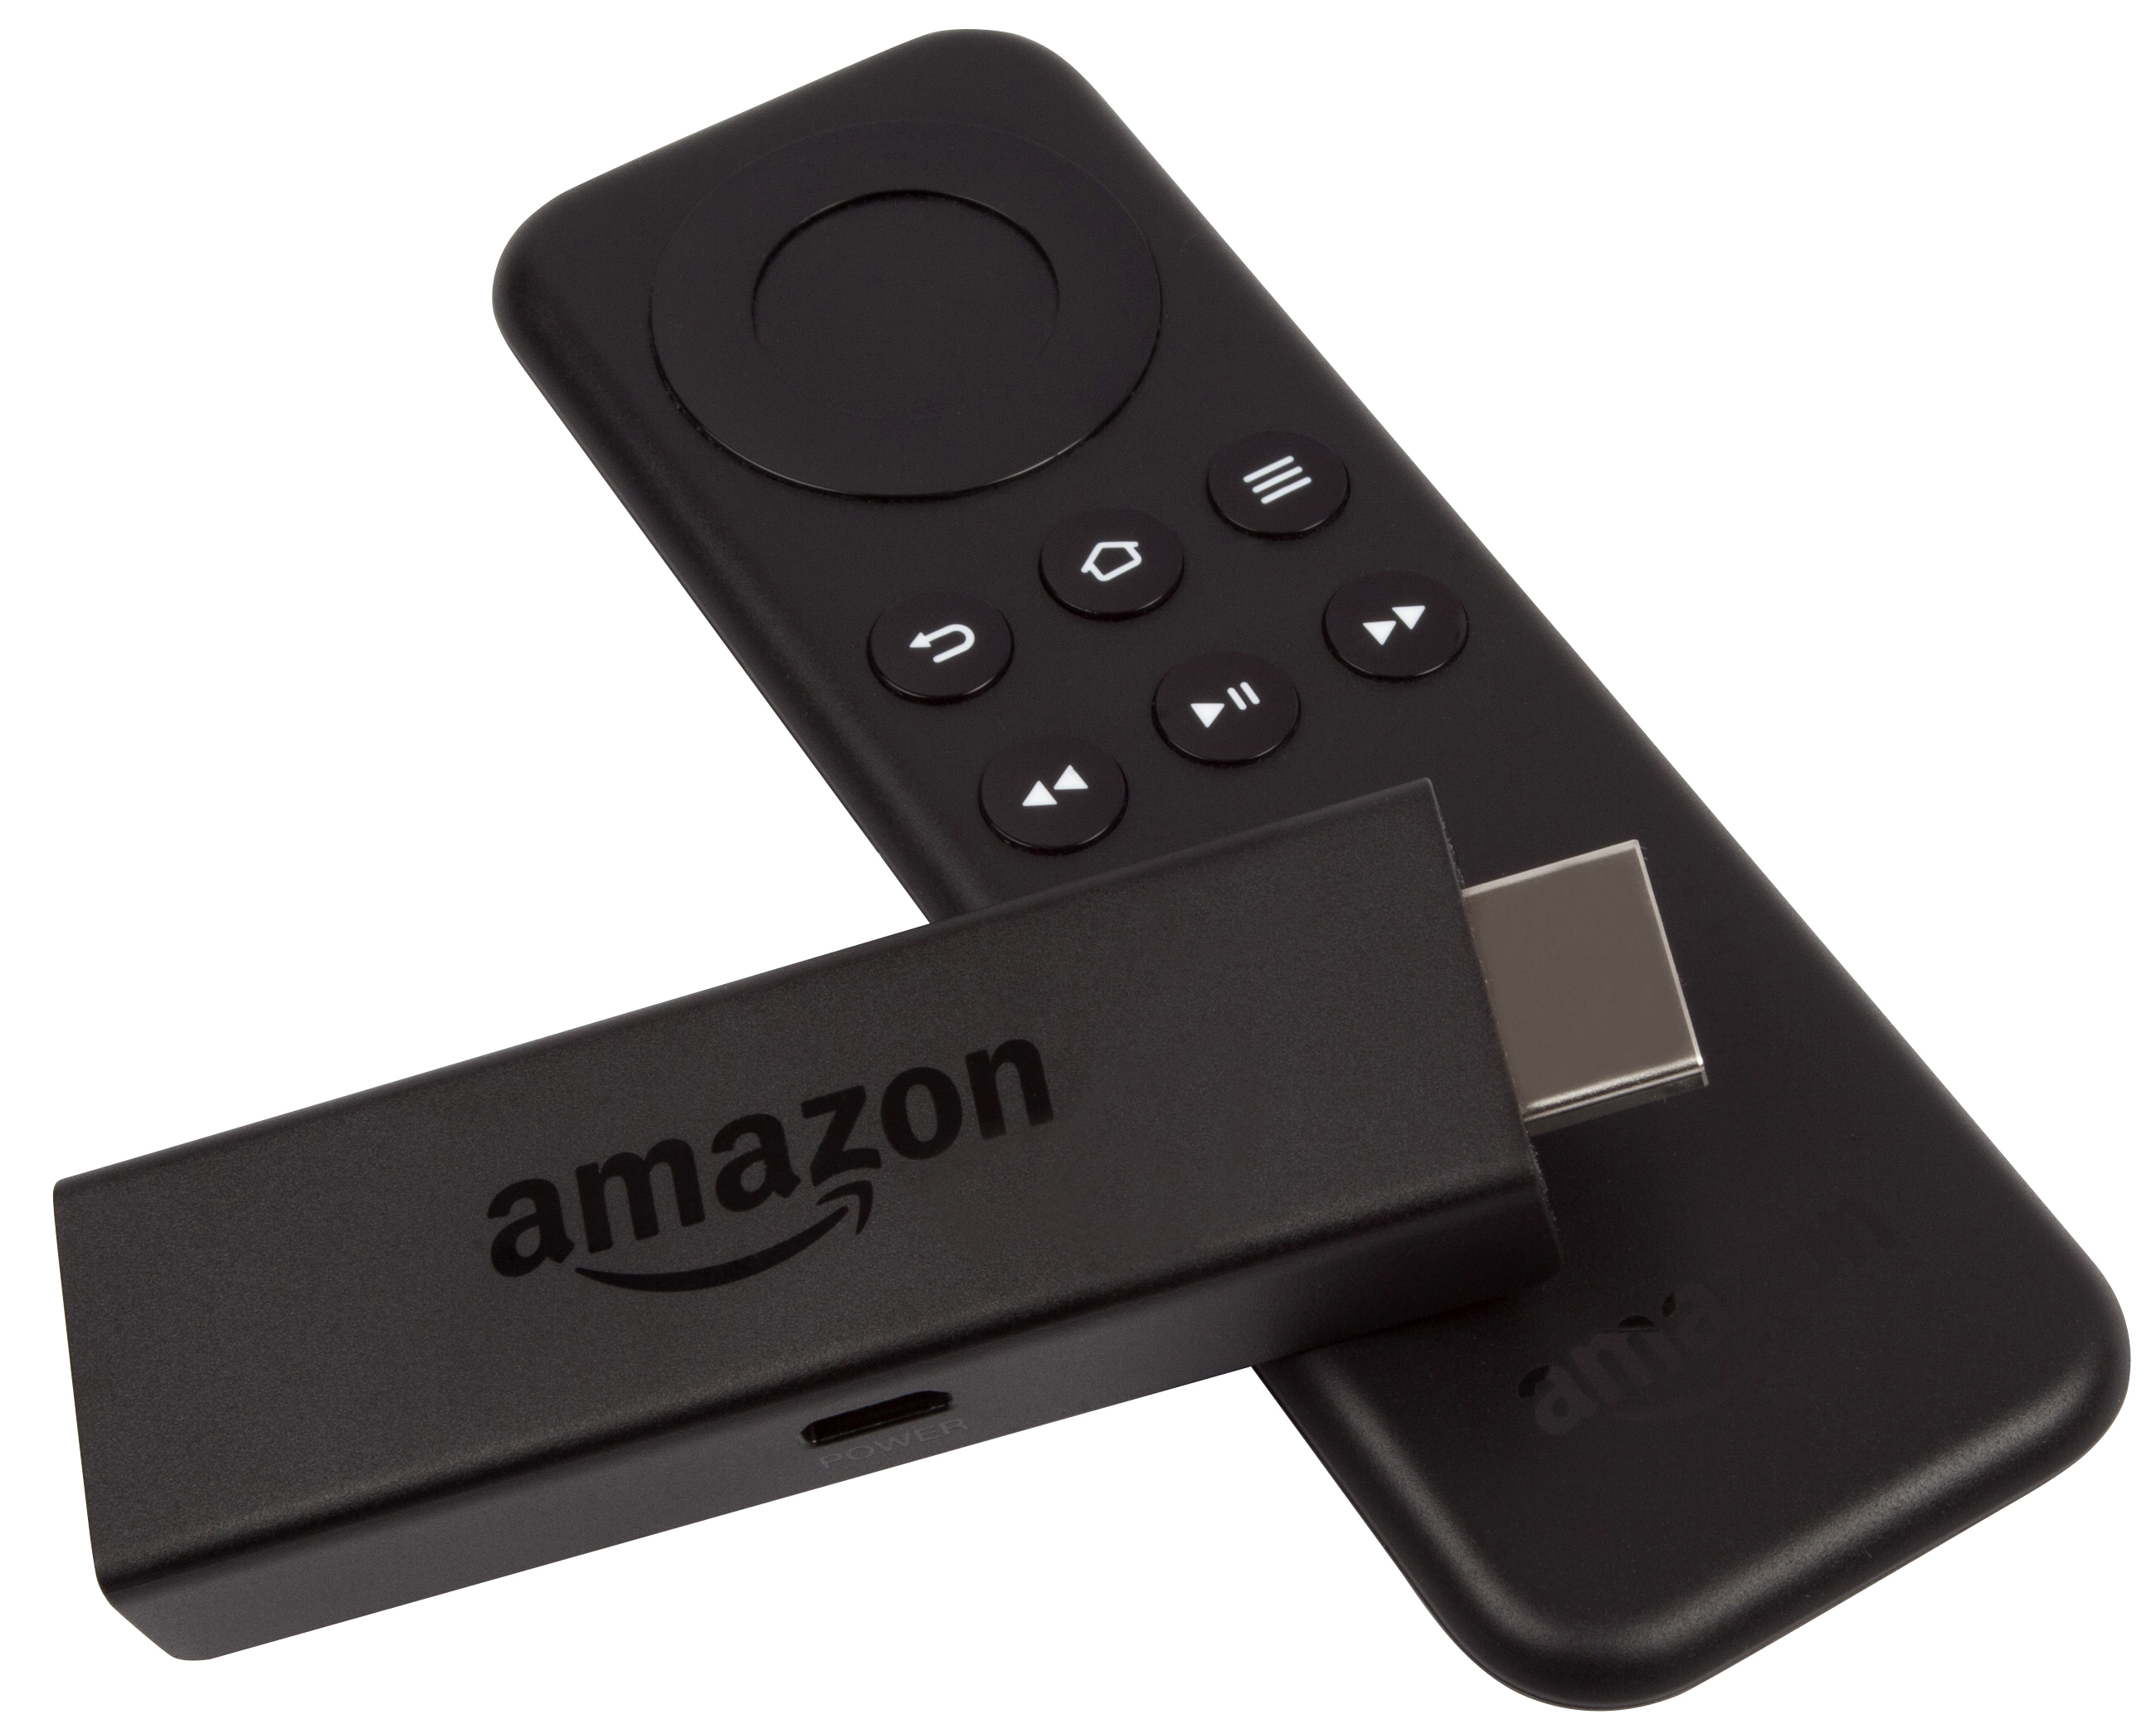 amazon firestick live tv with guide